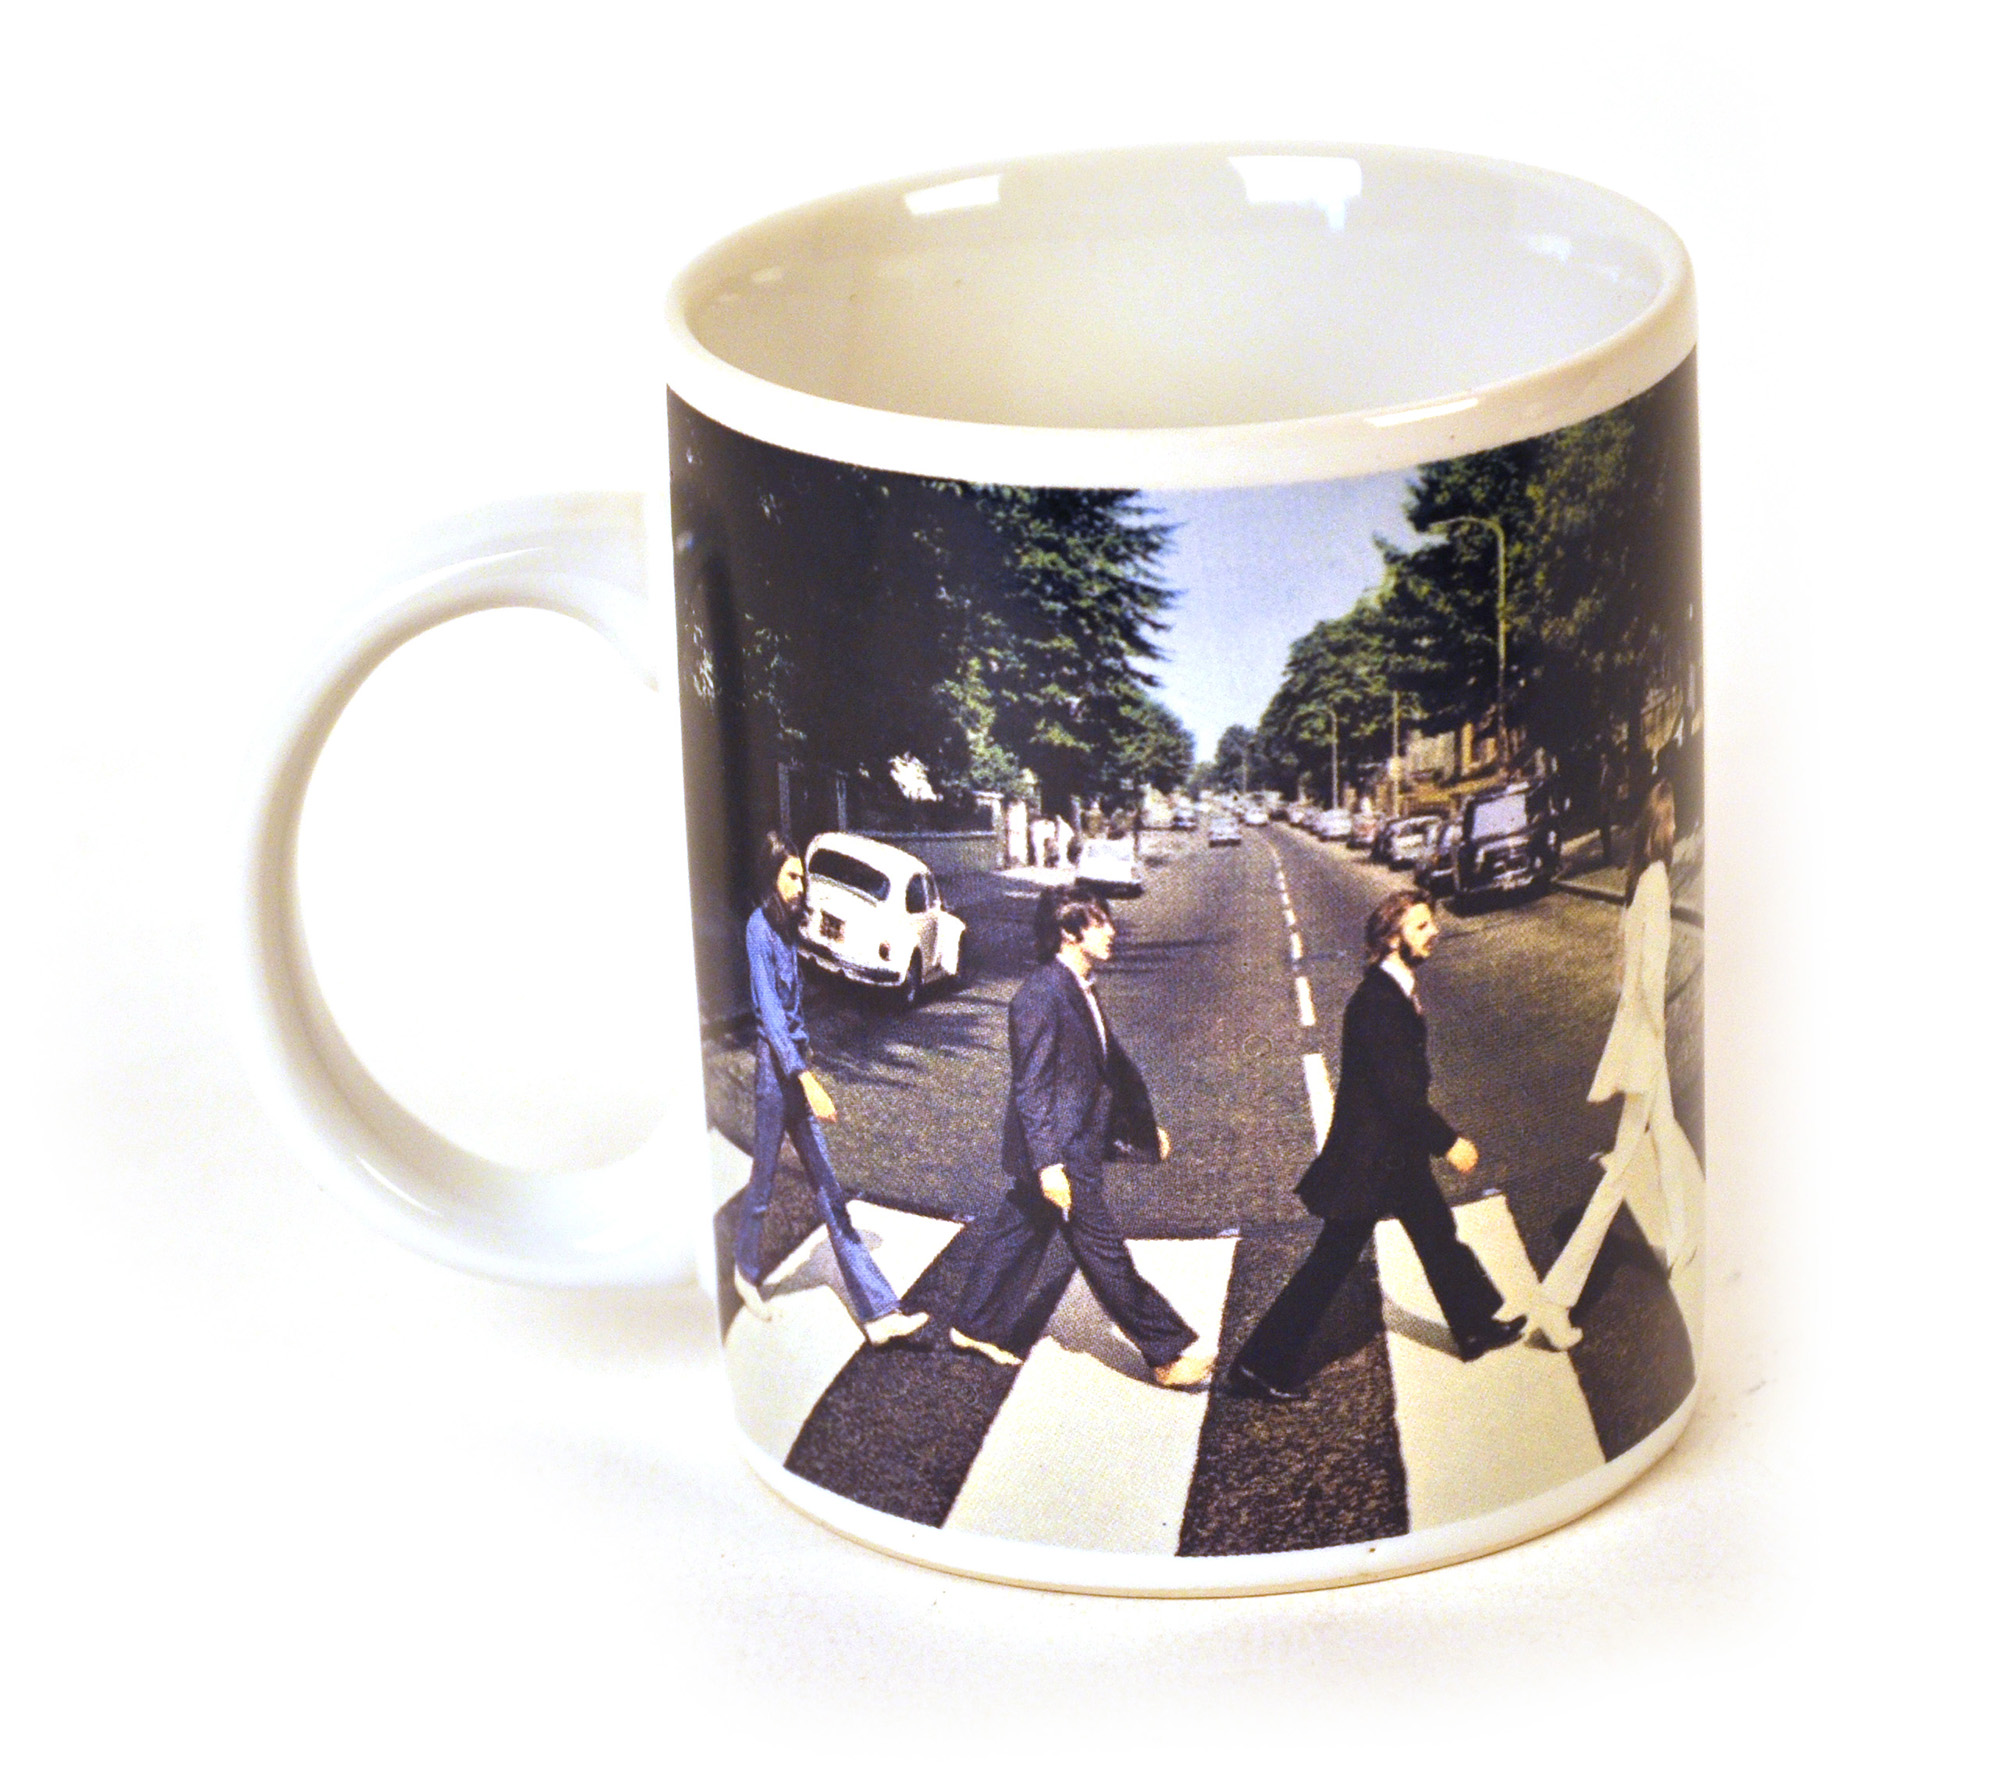 mug tasse the beatles abbey road lennon mccartney ebay. Black Bedroom Furniture Sets. Home Design Ideas